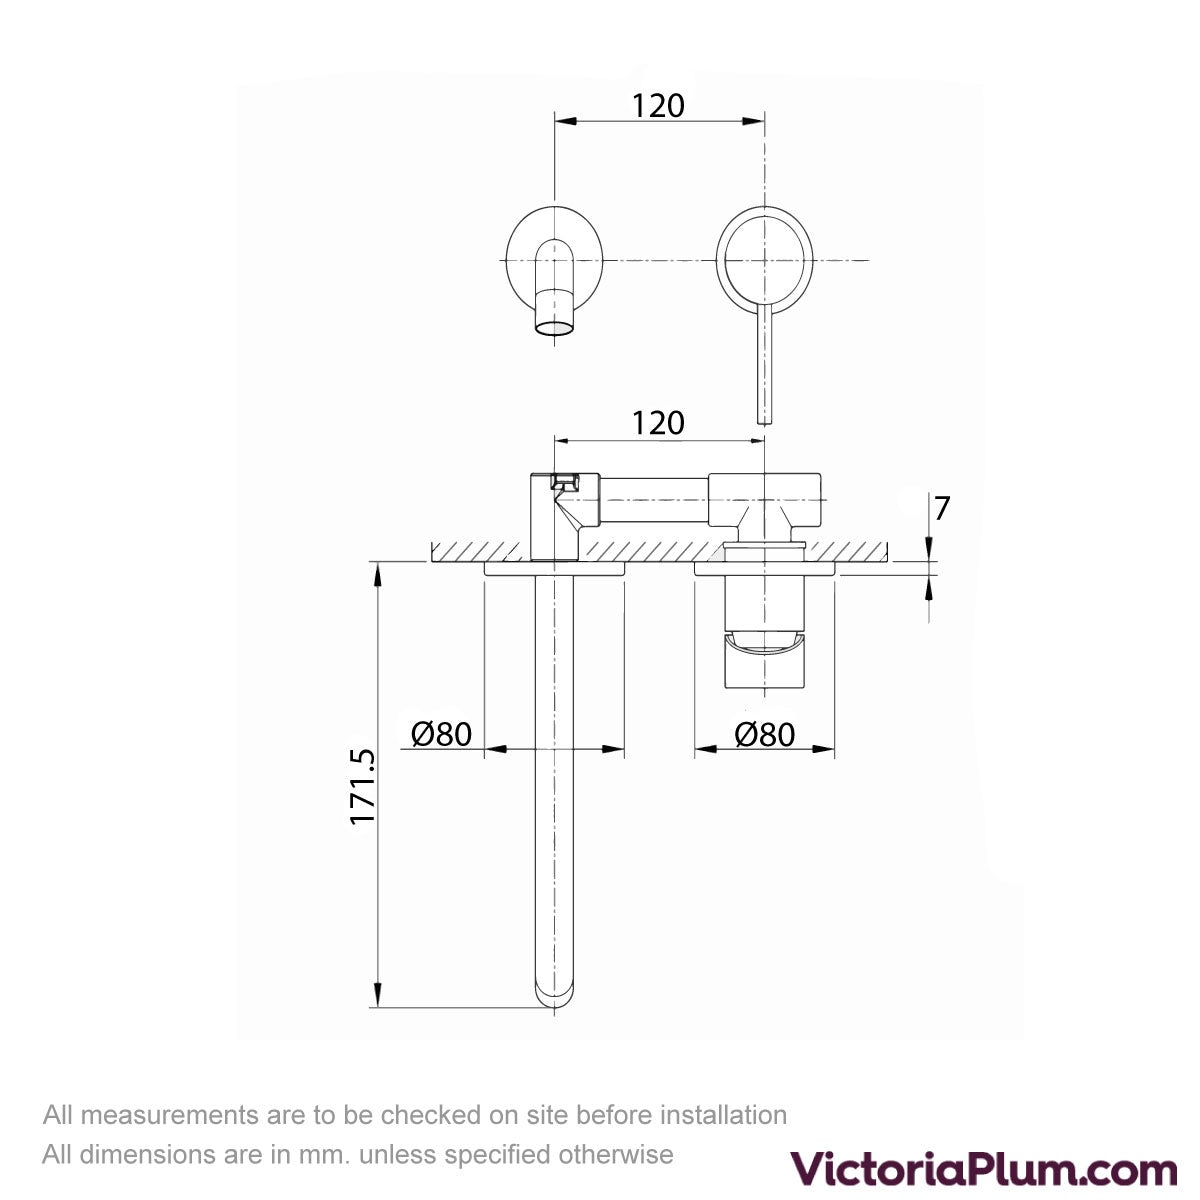 Dimensions for Mode Spencer round wall mounted gold basin mixer tap